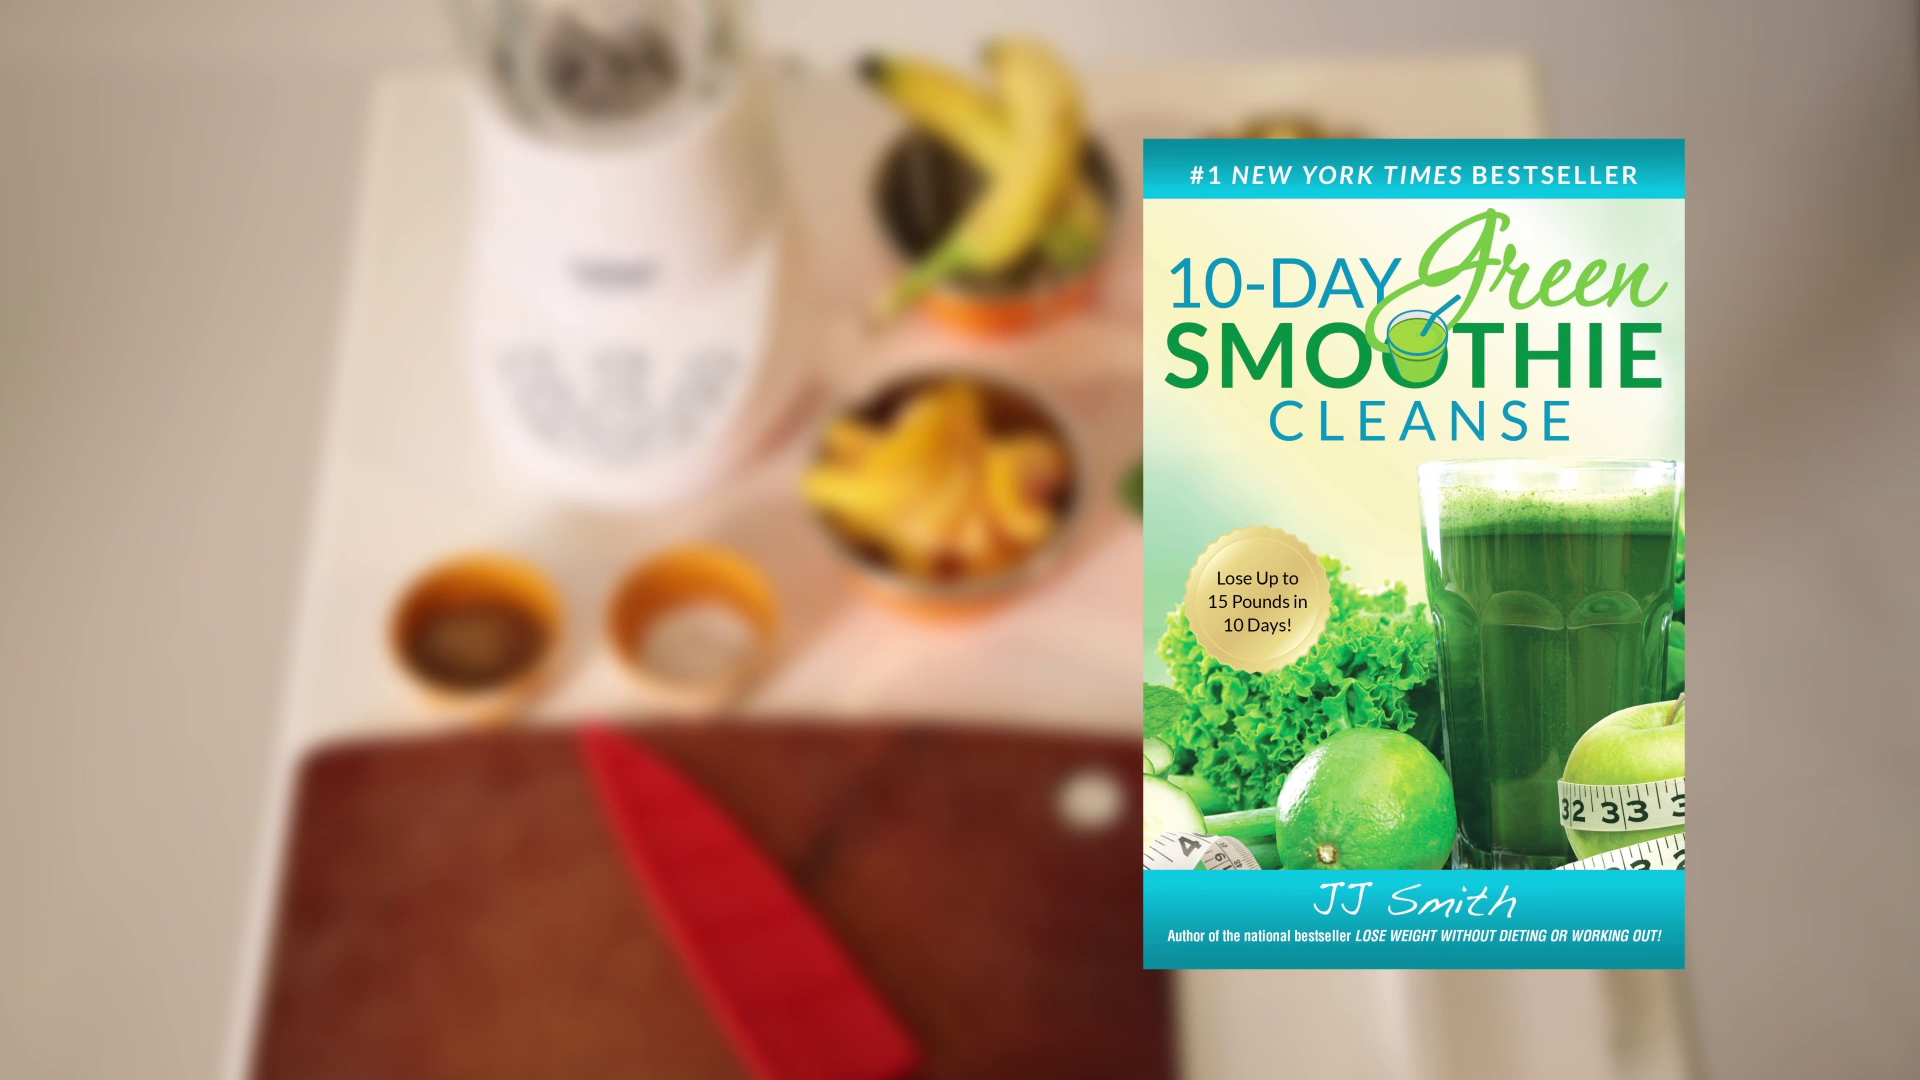 A recipe from the 10-DAY GREEN SMOOTHIE CLEANSE